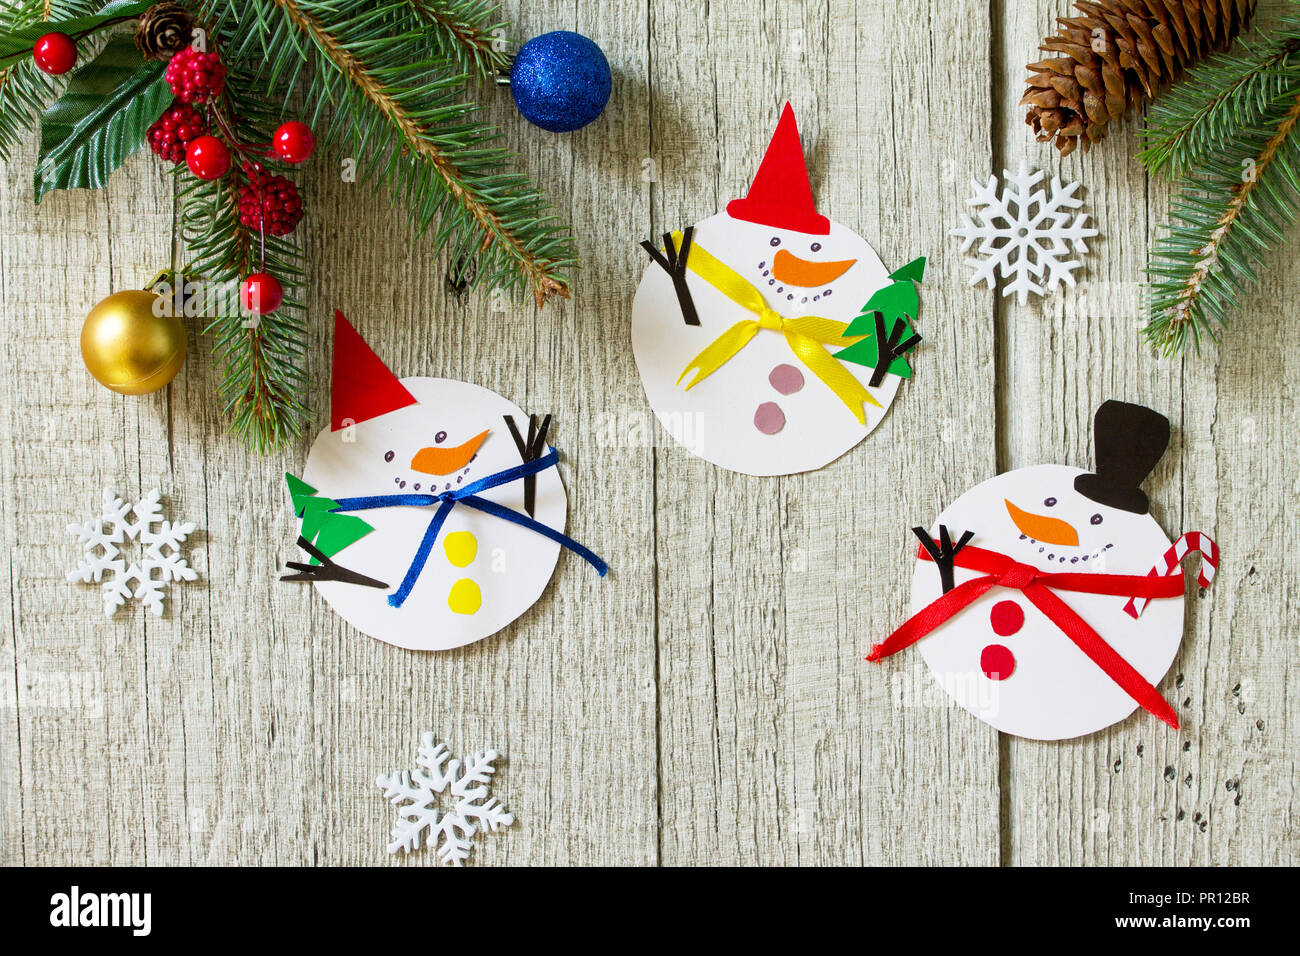 Christmas snowman merry gift on wooden table. Handmade. Project of ...